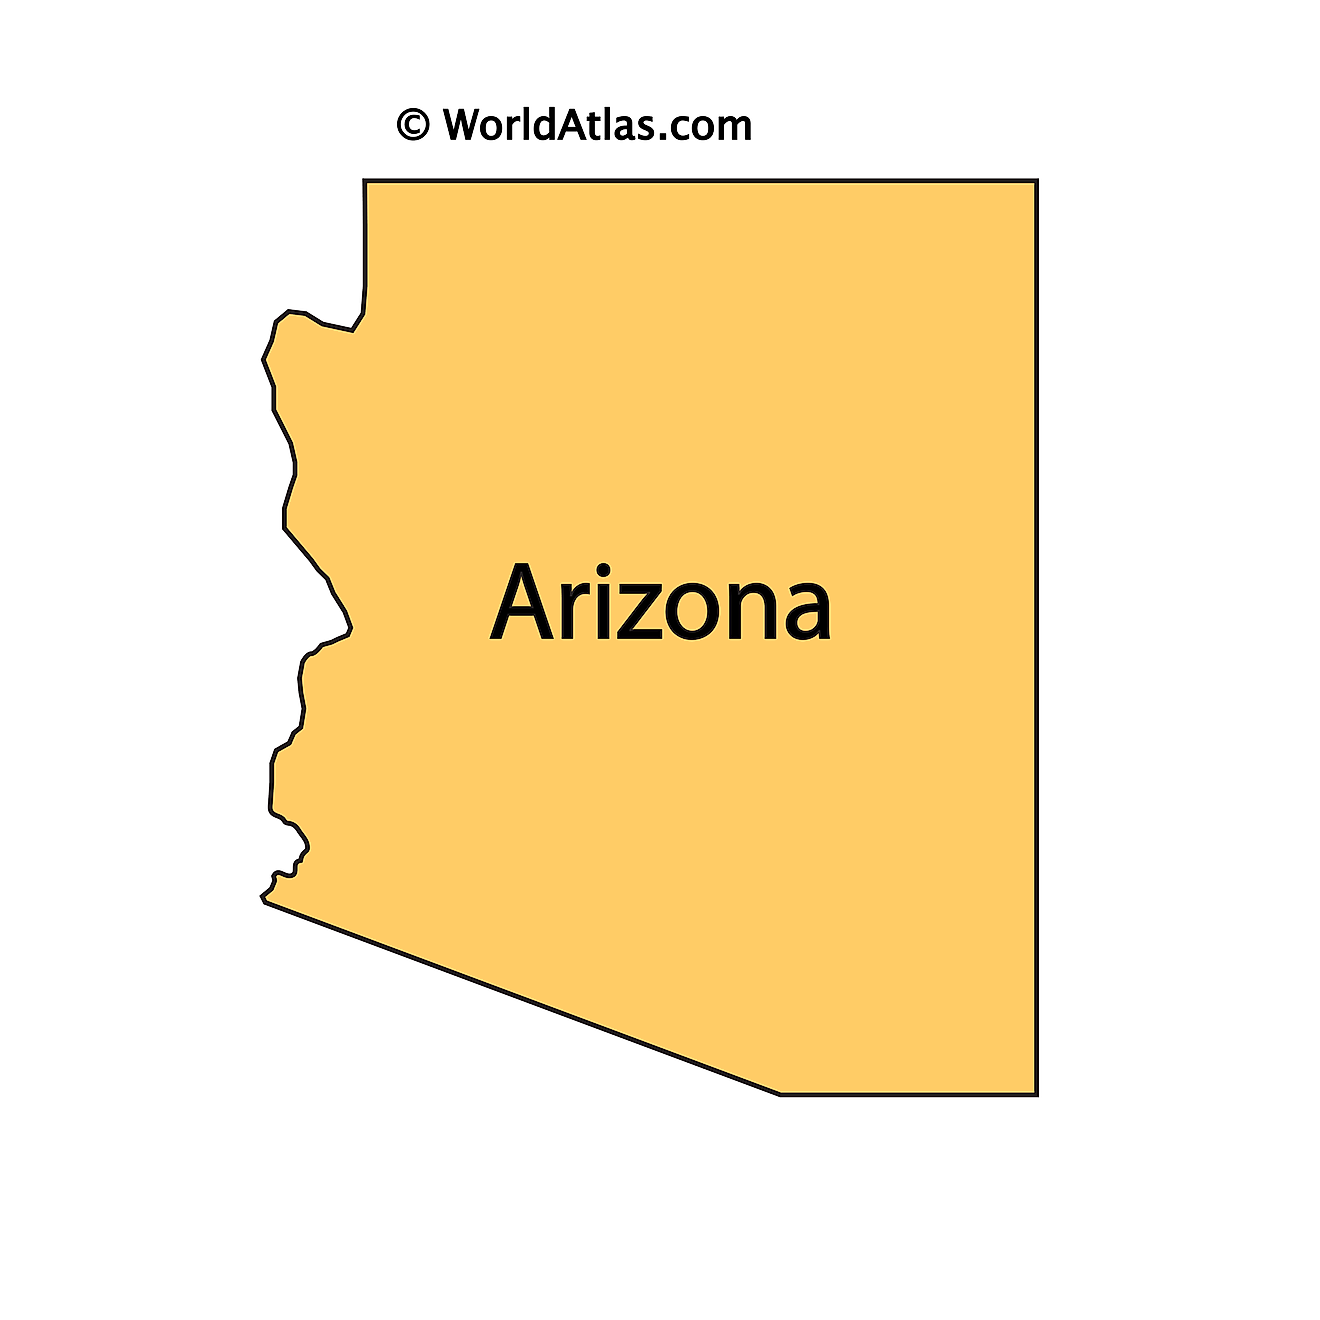 Outline Map of Arizona